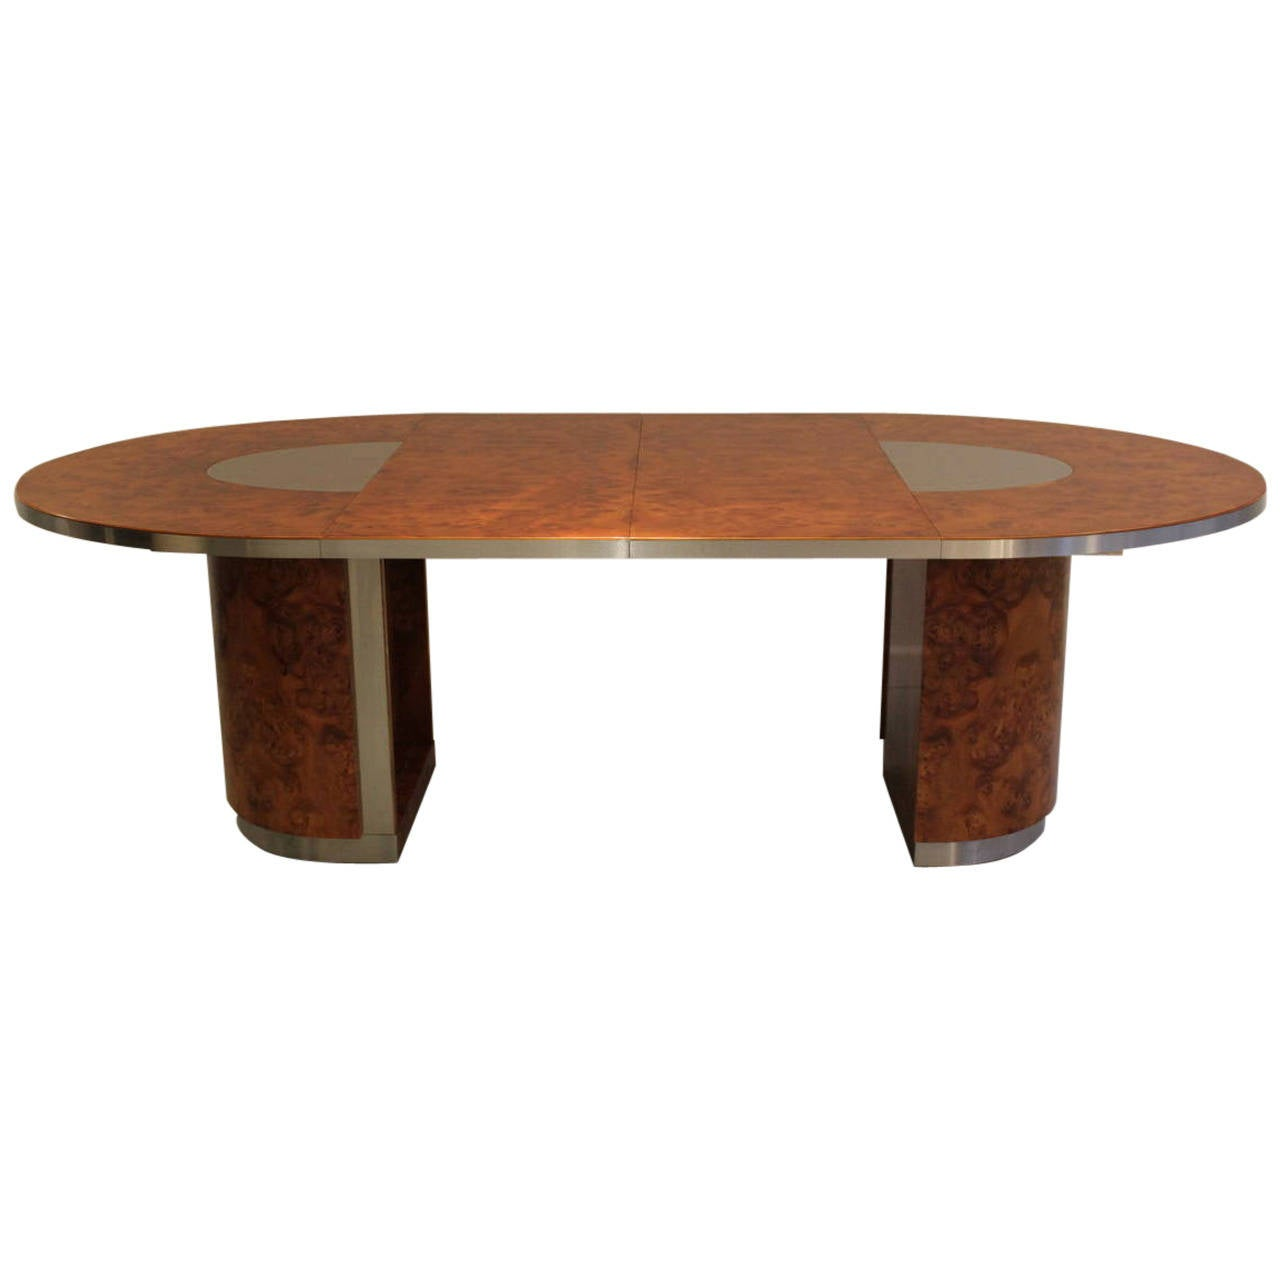 1970s Burl Wood And Brushed Steel Oval Dining Table At 1stdibs